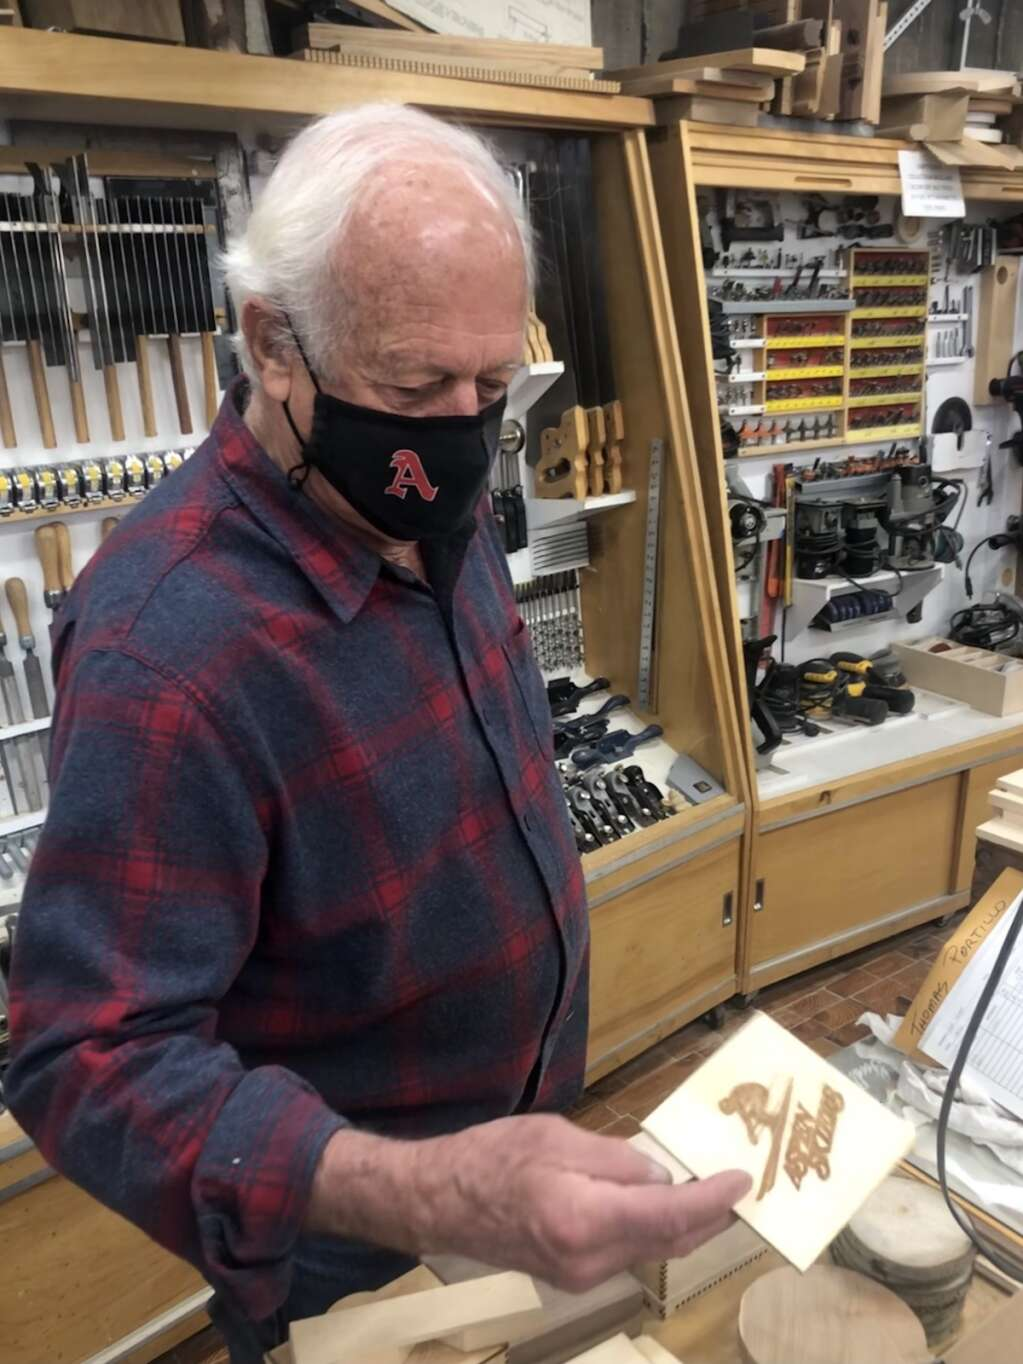 John Fisher holds up an Aspen Skiers coaster in his workshop at Aspen High School on March 22, 2021. | Kaya Williams/The Aspen Times